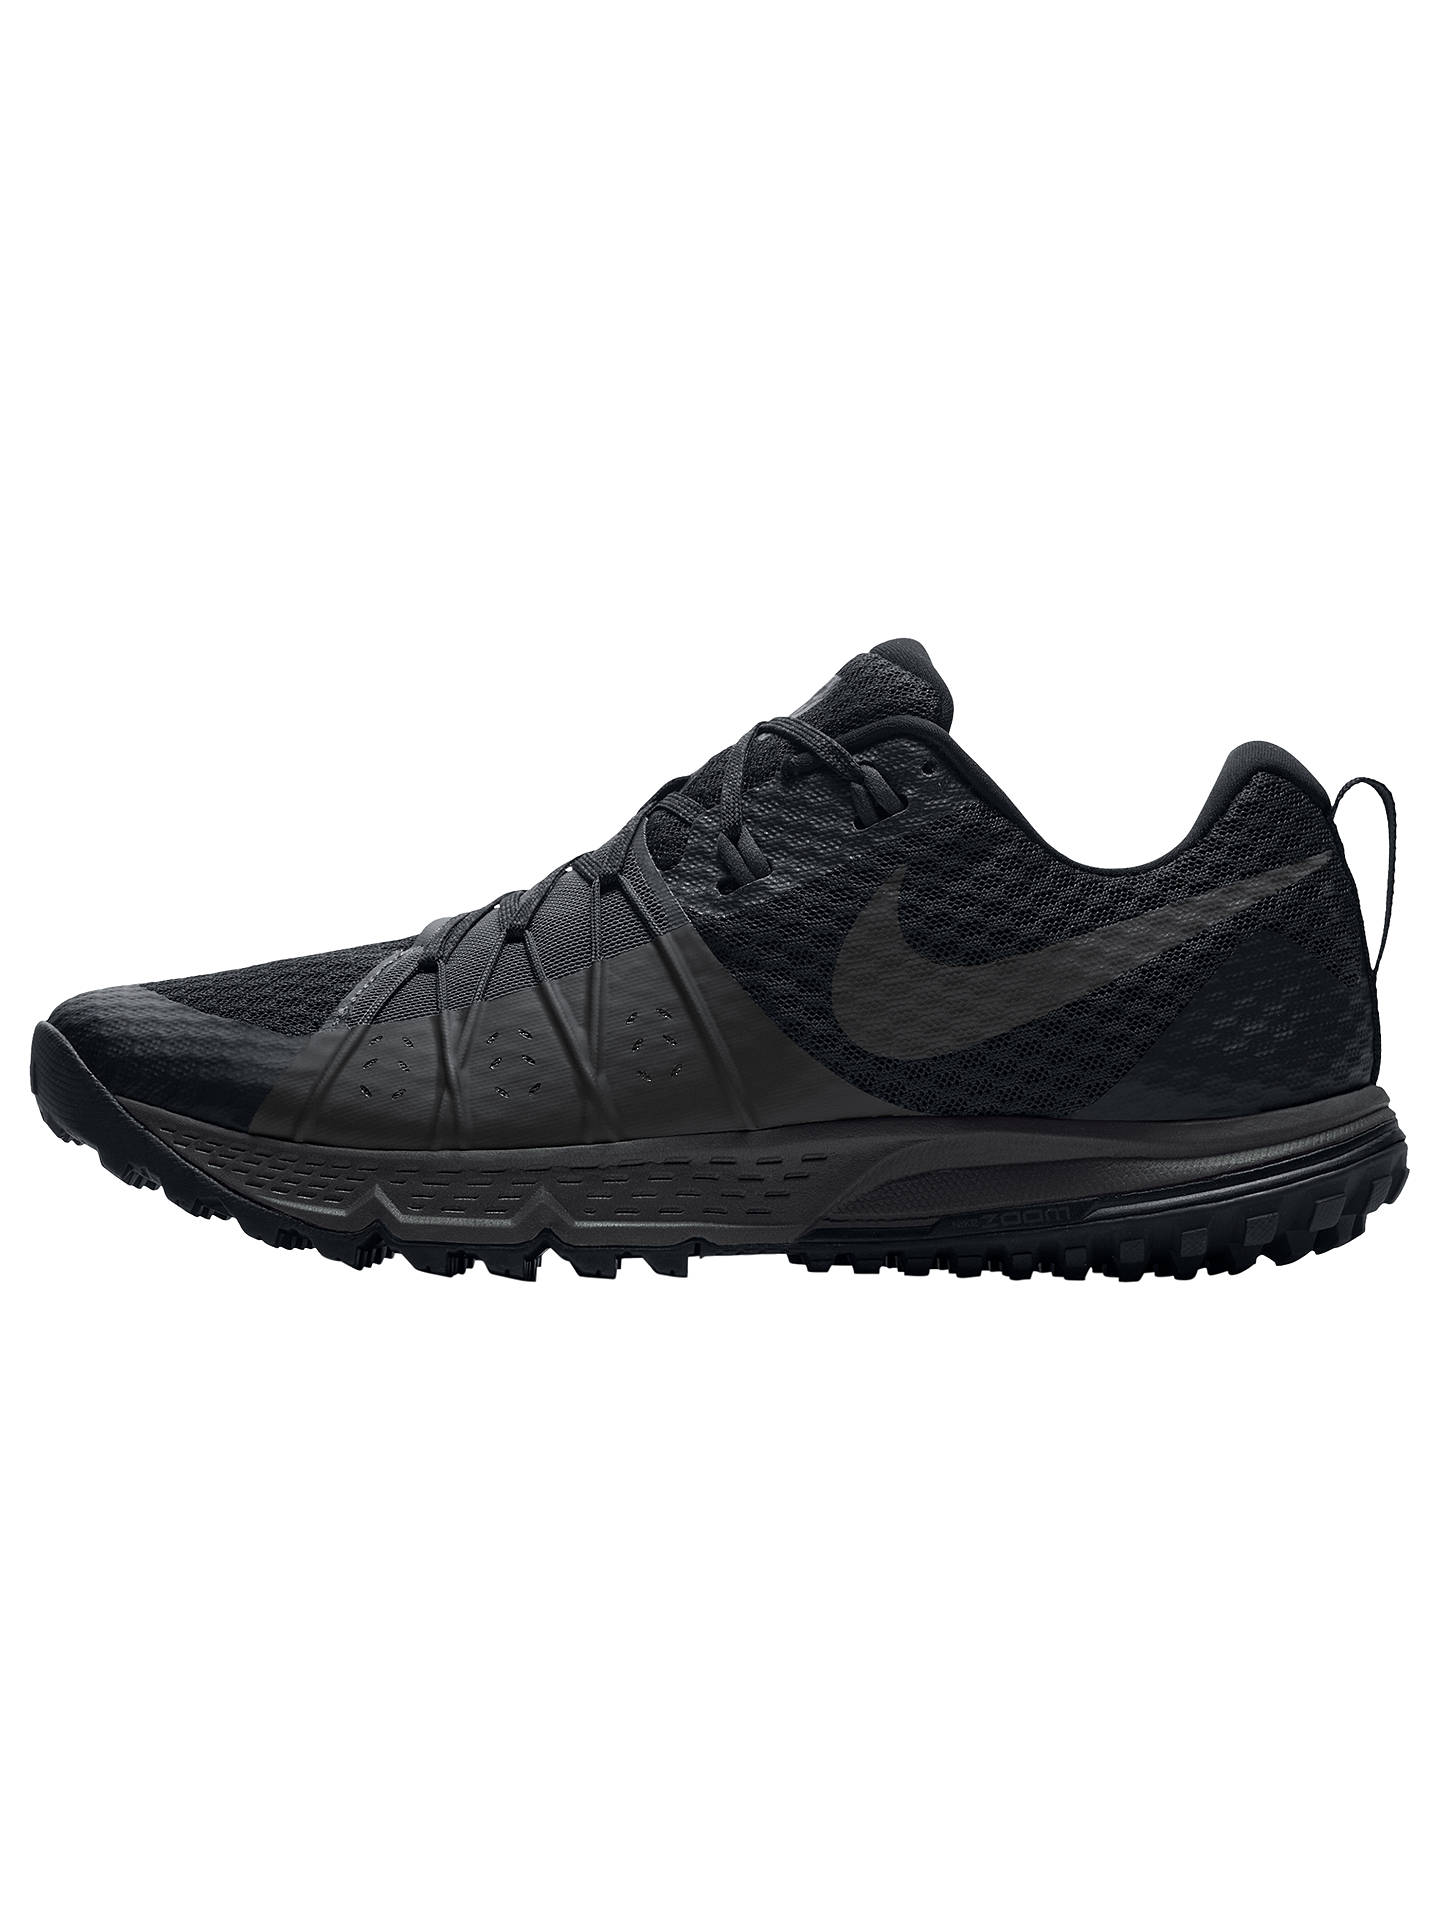 Nike Air Zoom Wildhorse 4 Uomo In Anthracite esecuzione scarpe, Nero Anthracite In at   335373